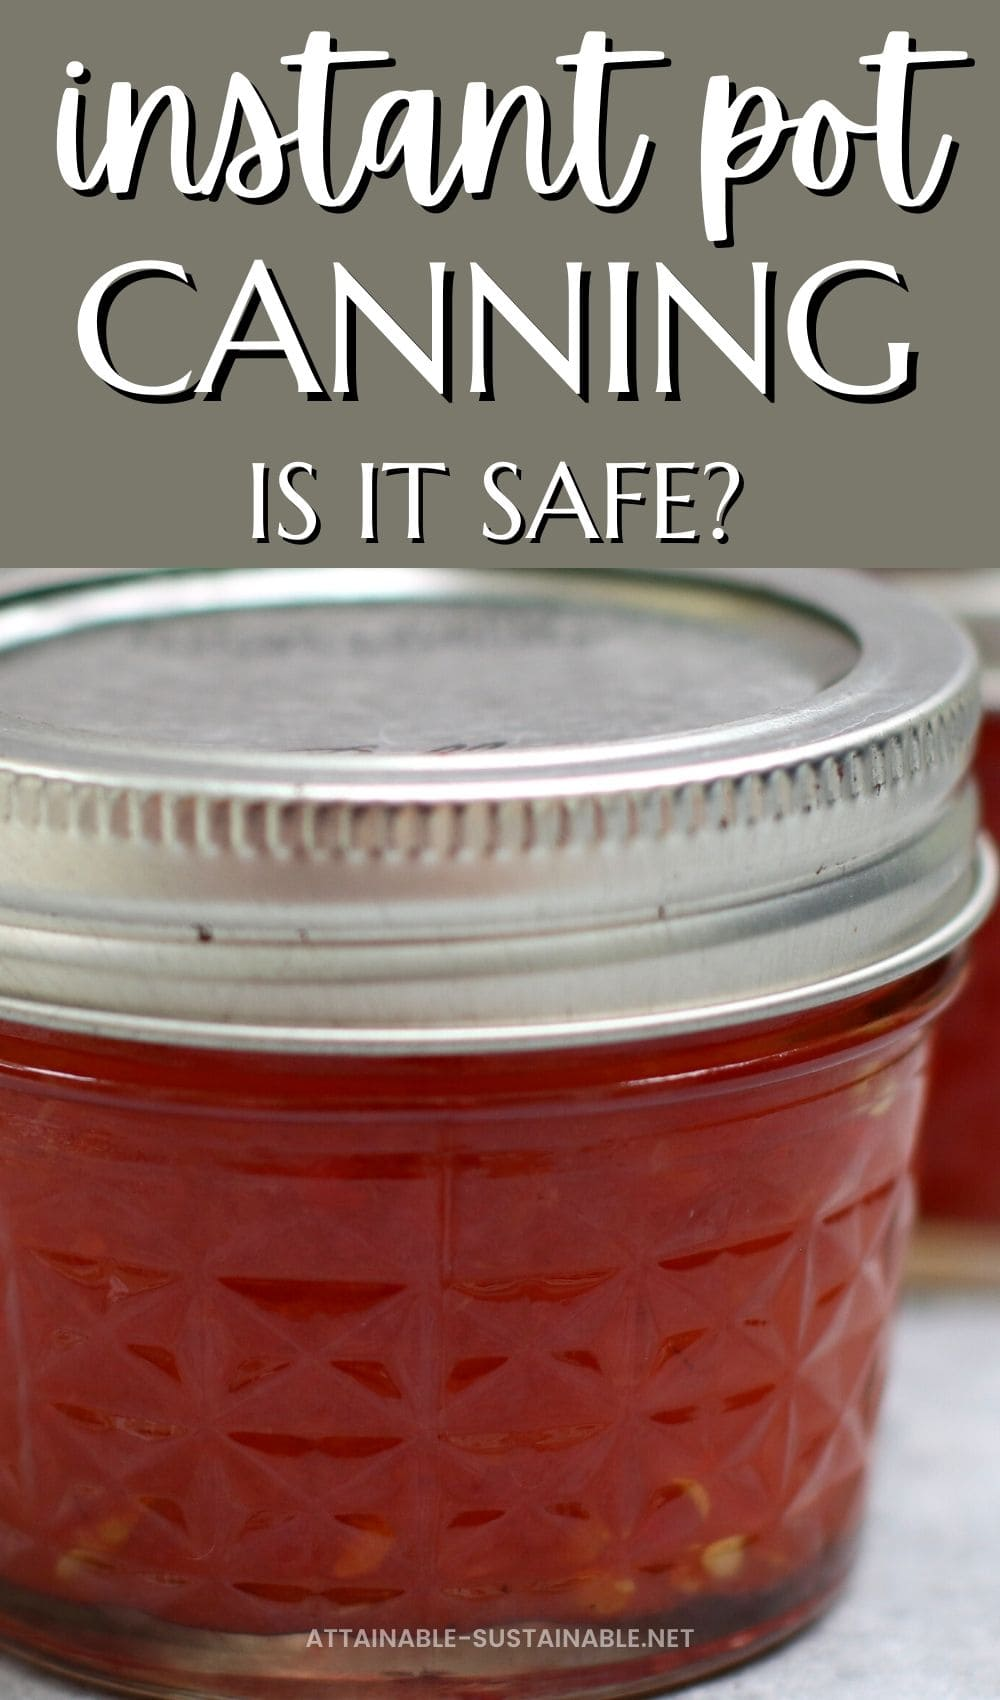 close up of canning jar full of red jam